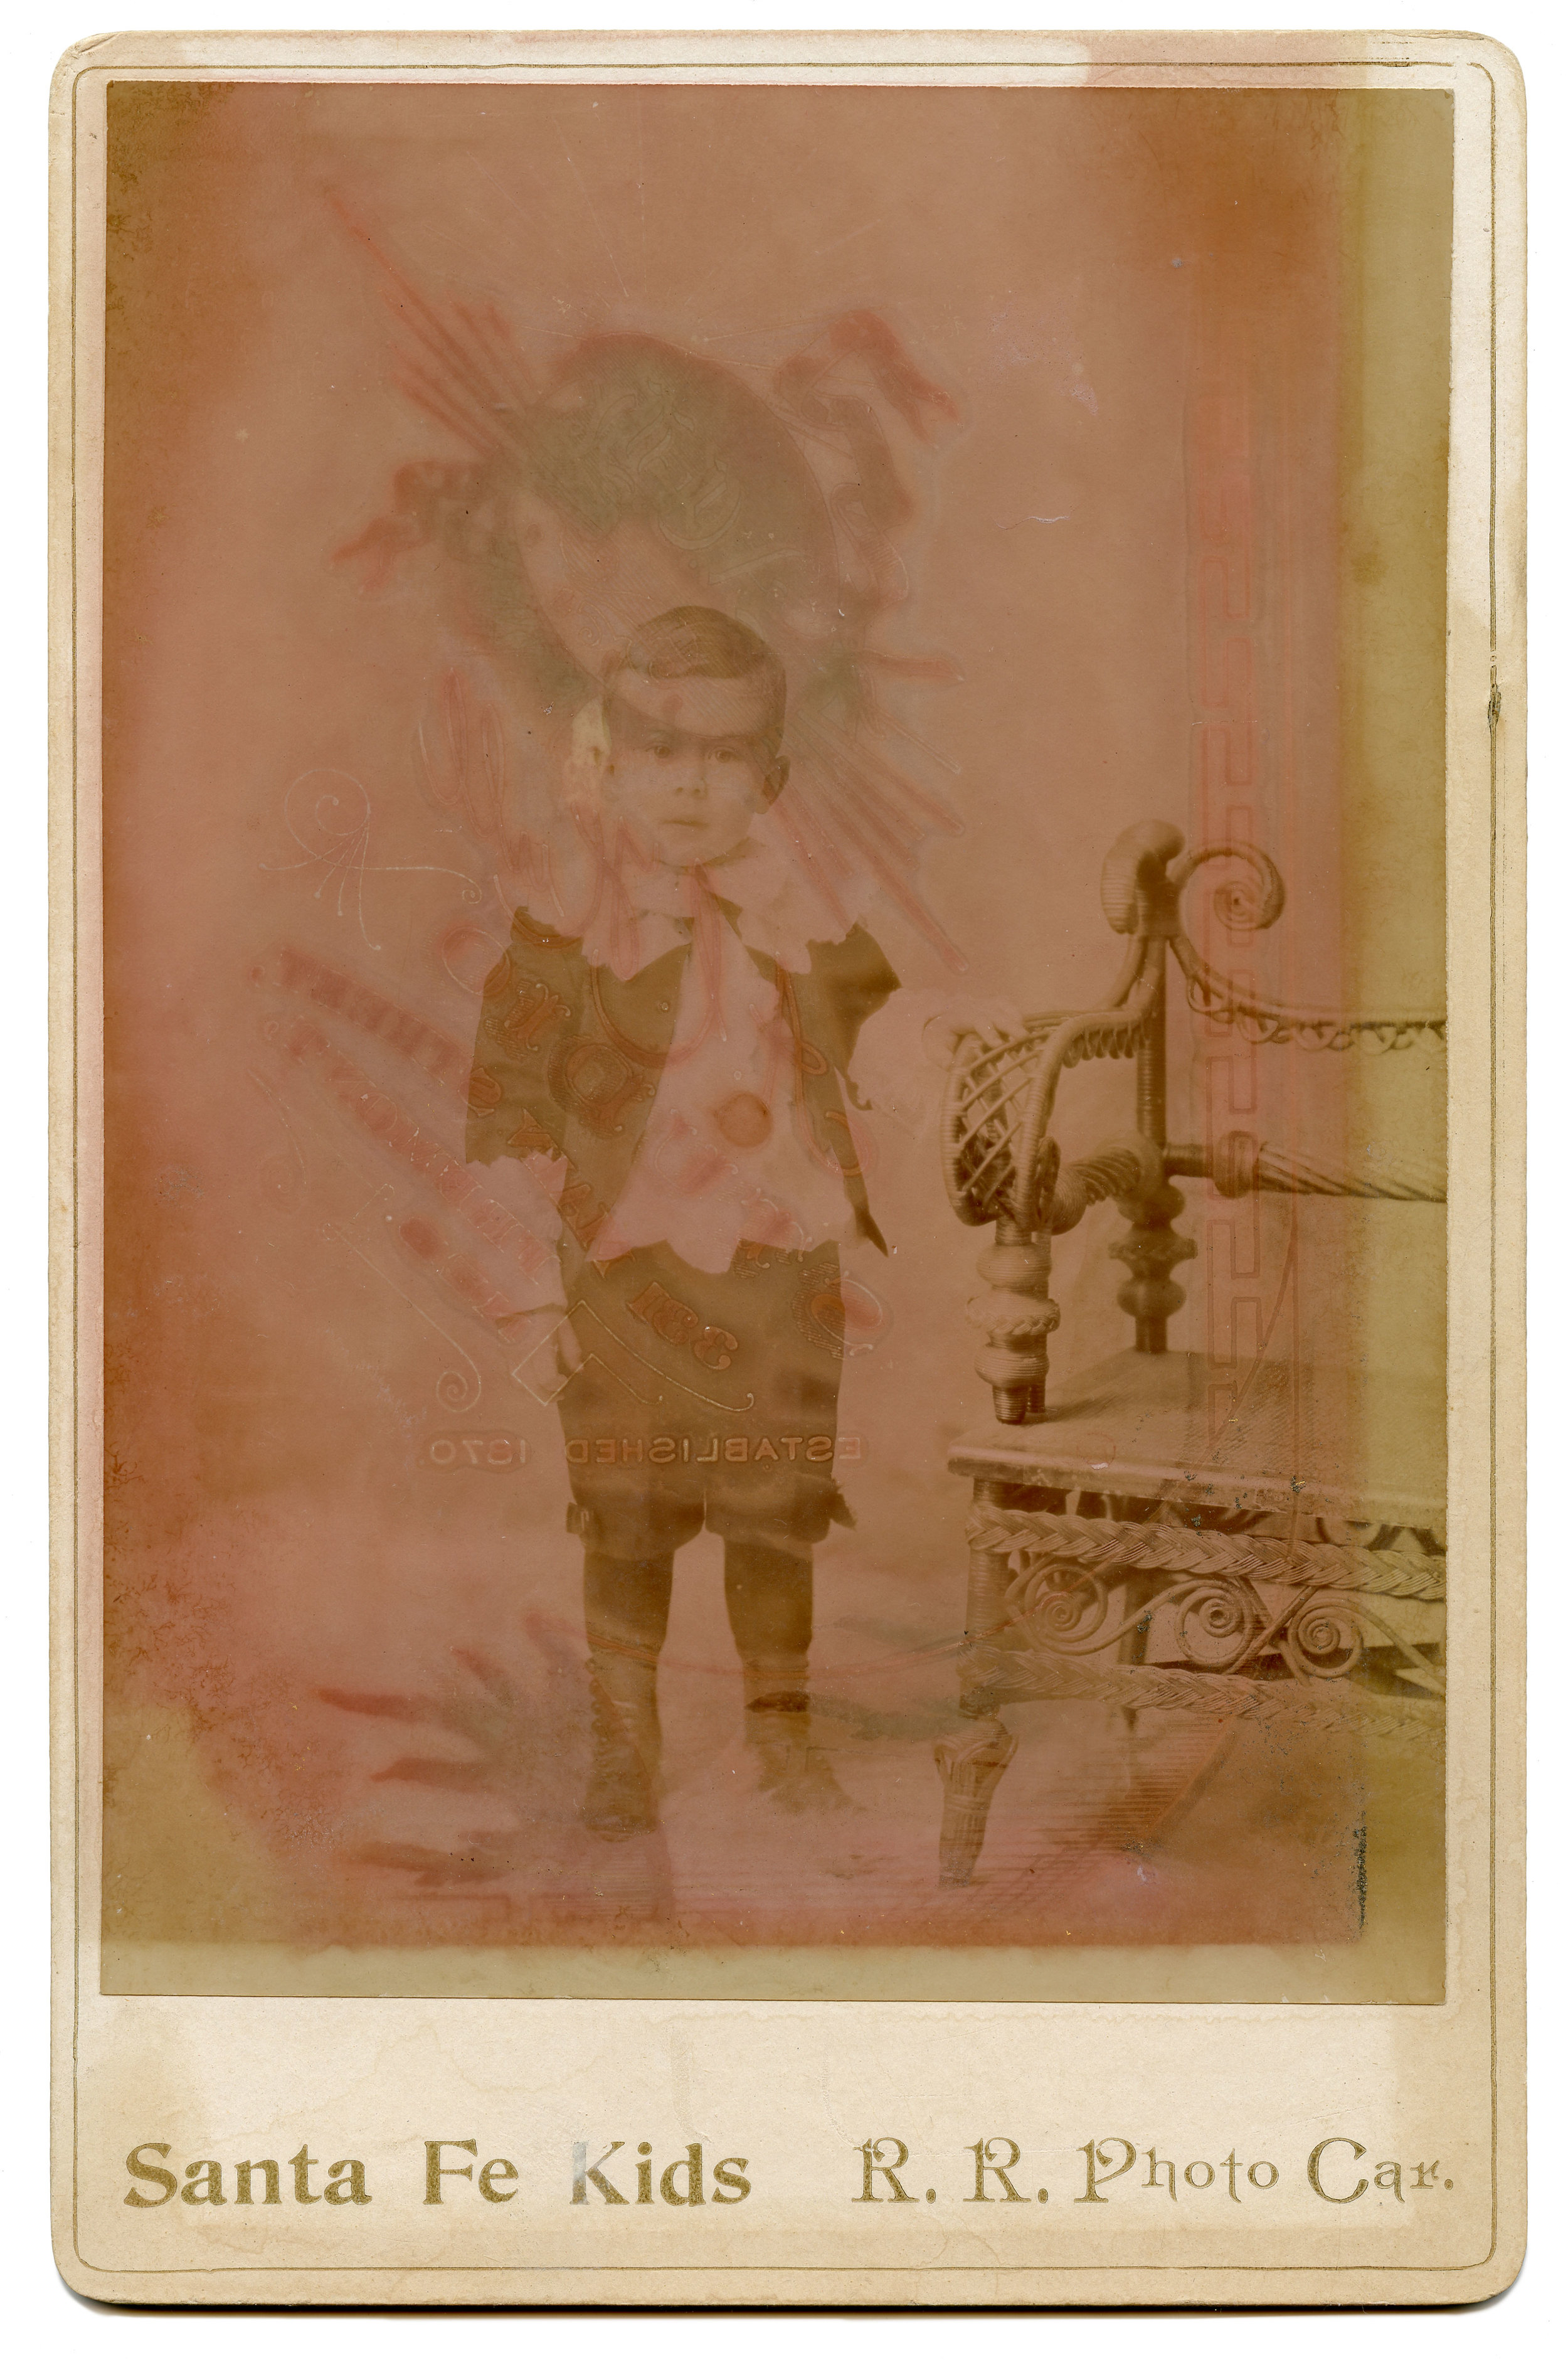 """""""Sante Fe Kids -- R.R. Photo Car"""" Victorian cabinet card, Late 19th c,  6.5"""" x 4.25"""" Found in Wilkes-Barre, PA   I acquired this card because of the watermark-like stain left on the photograph from what may have been another photo made by Arundel Hull of Fremont, Nebraska during the late 19th century.  A.C. Hull  was assistant to  William Henry Jackson  in his extenstive documentation of the early west, more specifically, the expansion of the Union Pacific railroad. With a blank back, it's hard to tell if this was in fact taken by A.C. Hull but the markings suggest it was in the company of his work at some point. An error in the making perhaps? In any case, I love the flaws, I love the colors."""